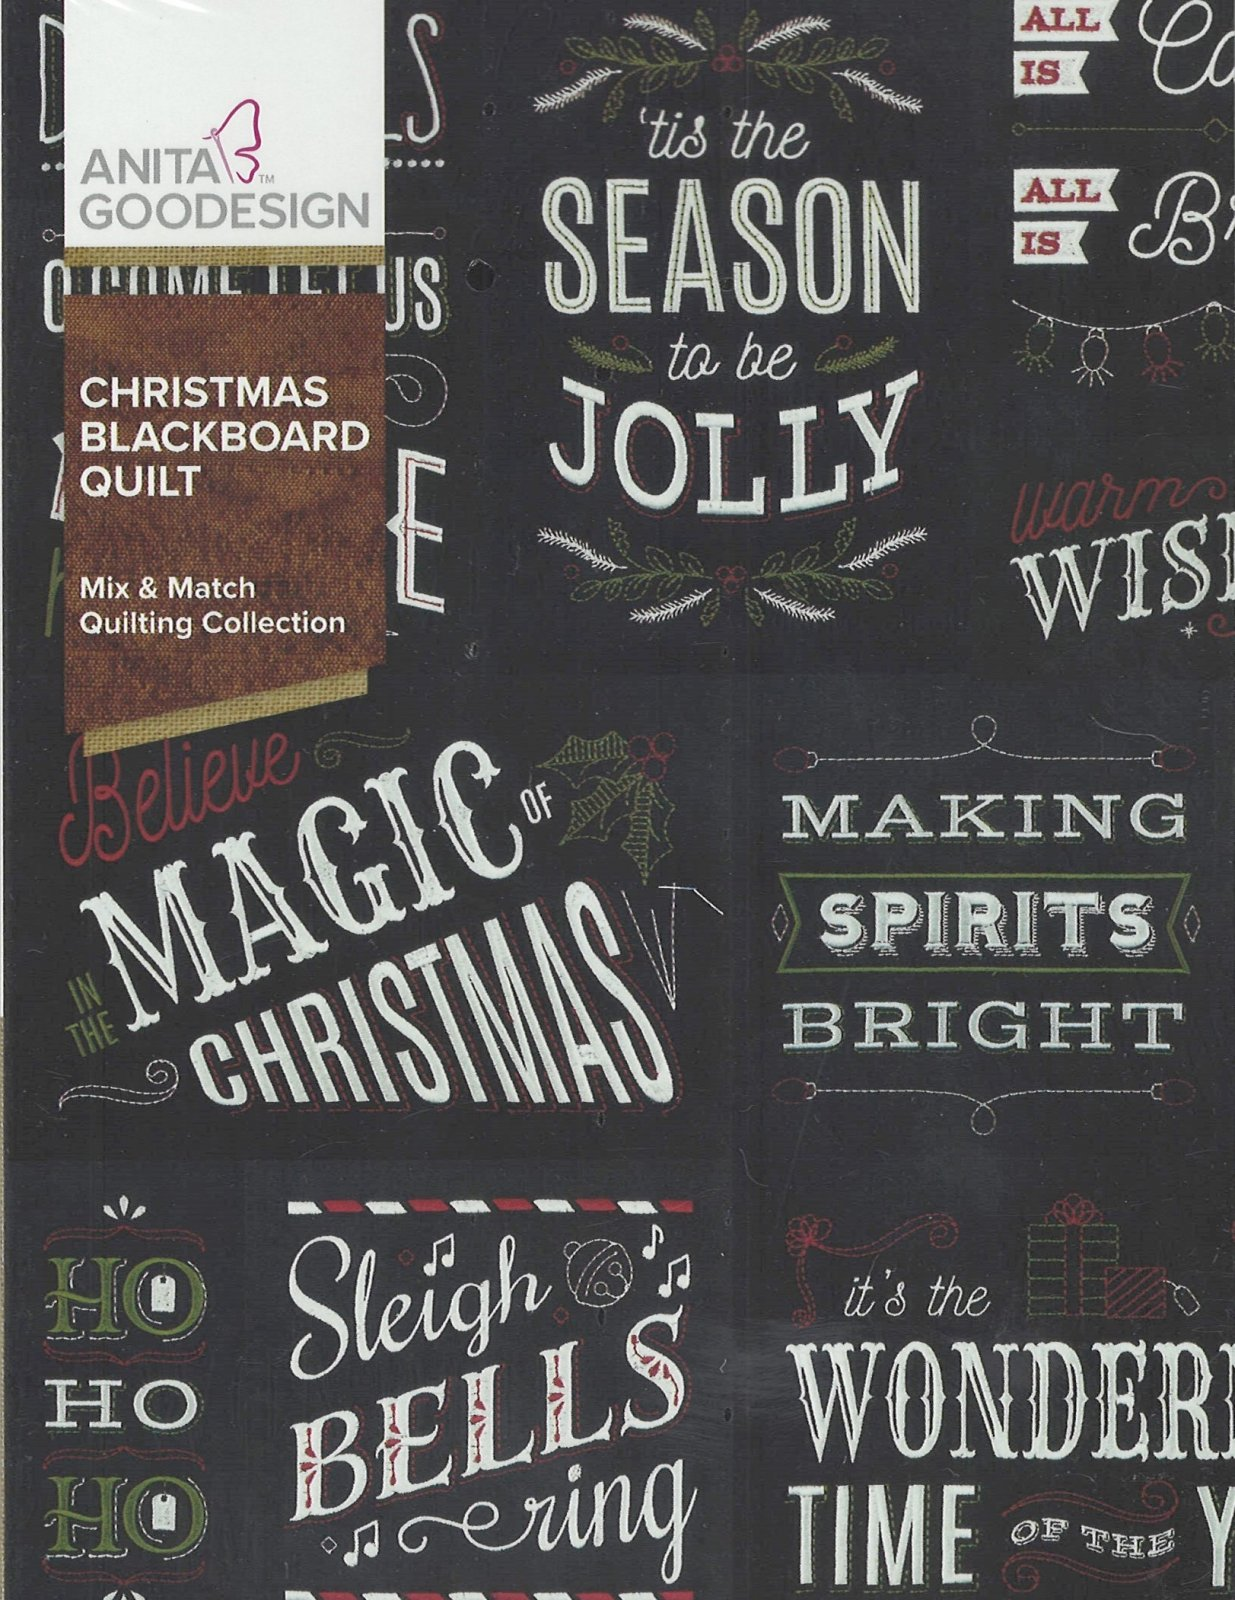 Anita Goodesign Machine Embroidery designs Christmas Blackboard Quilt  Full Collection CD